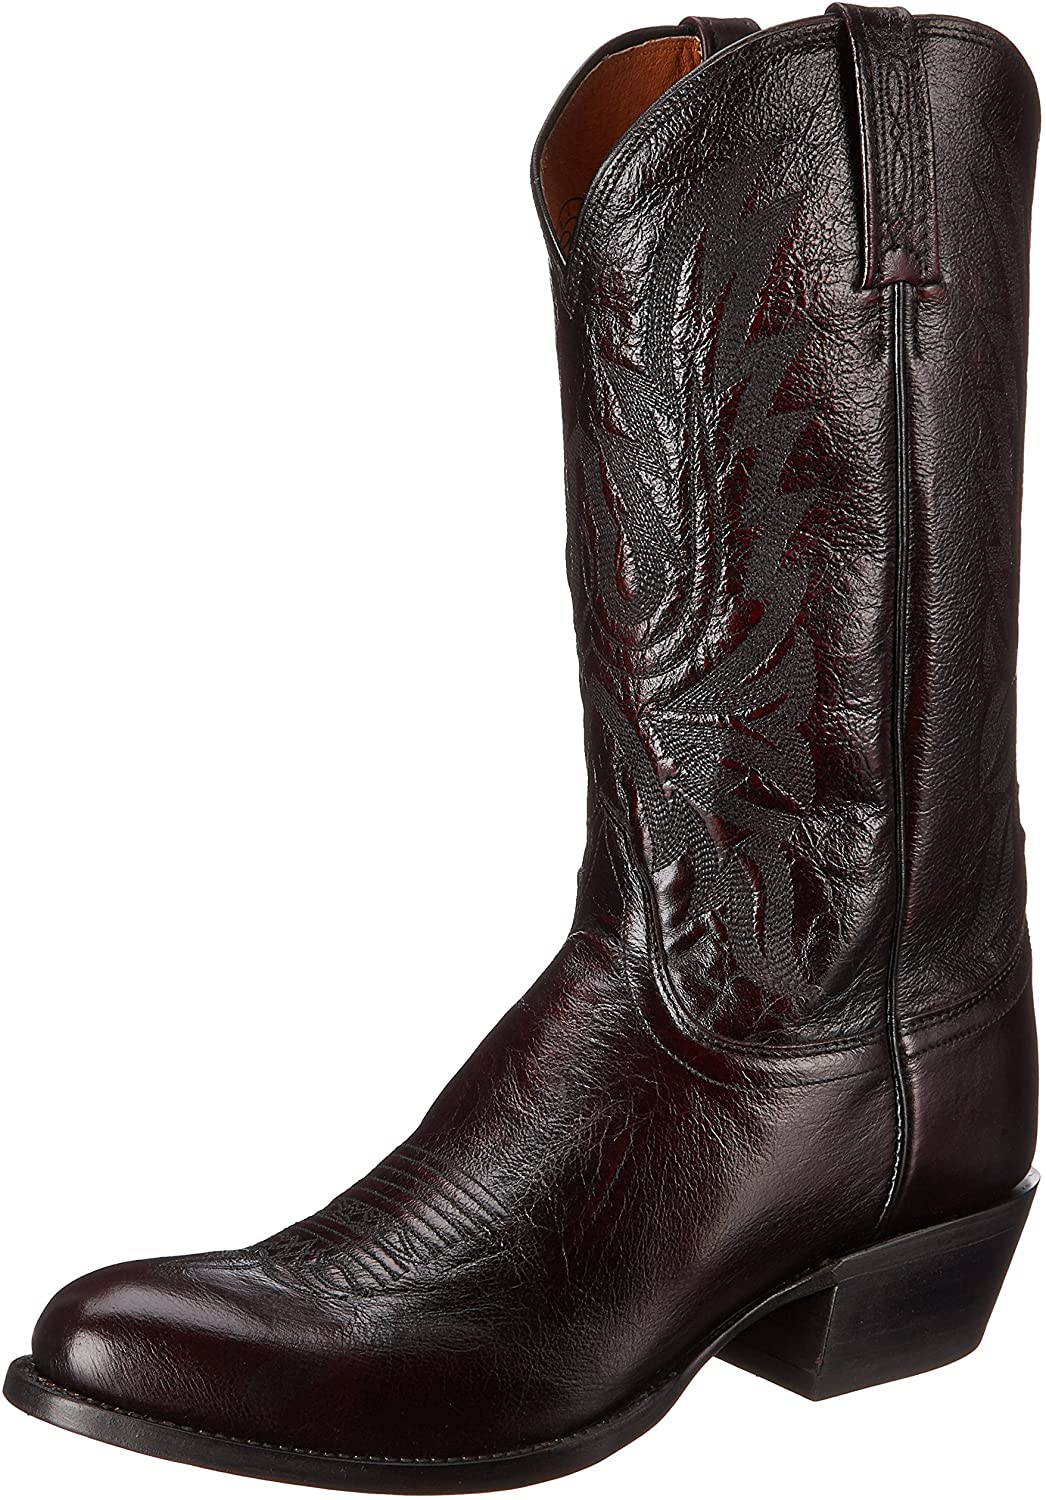 Lucchese Bootmaker Mens Carson Max 87% OFF Lonestar Easy-to-use Dress Toe Calf Boo Round